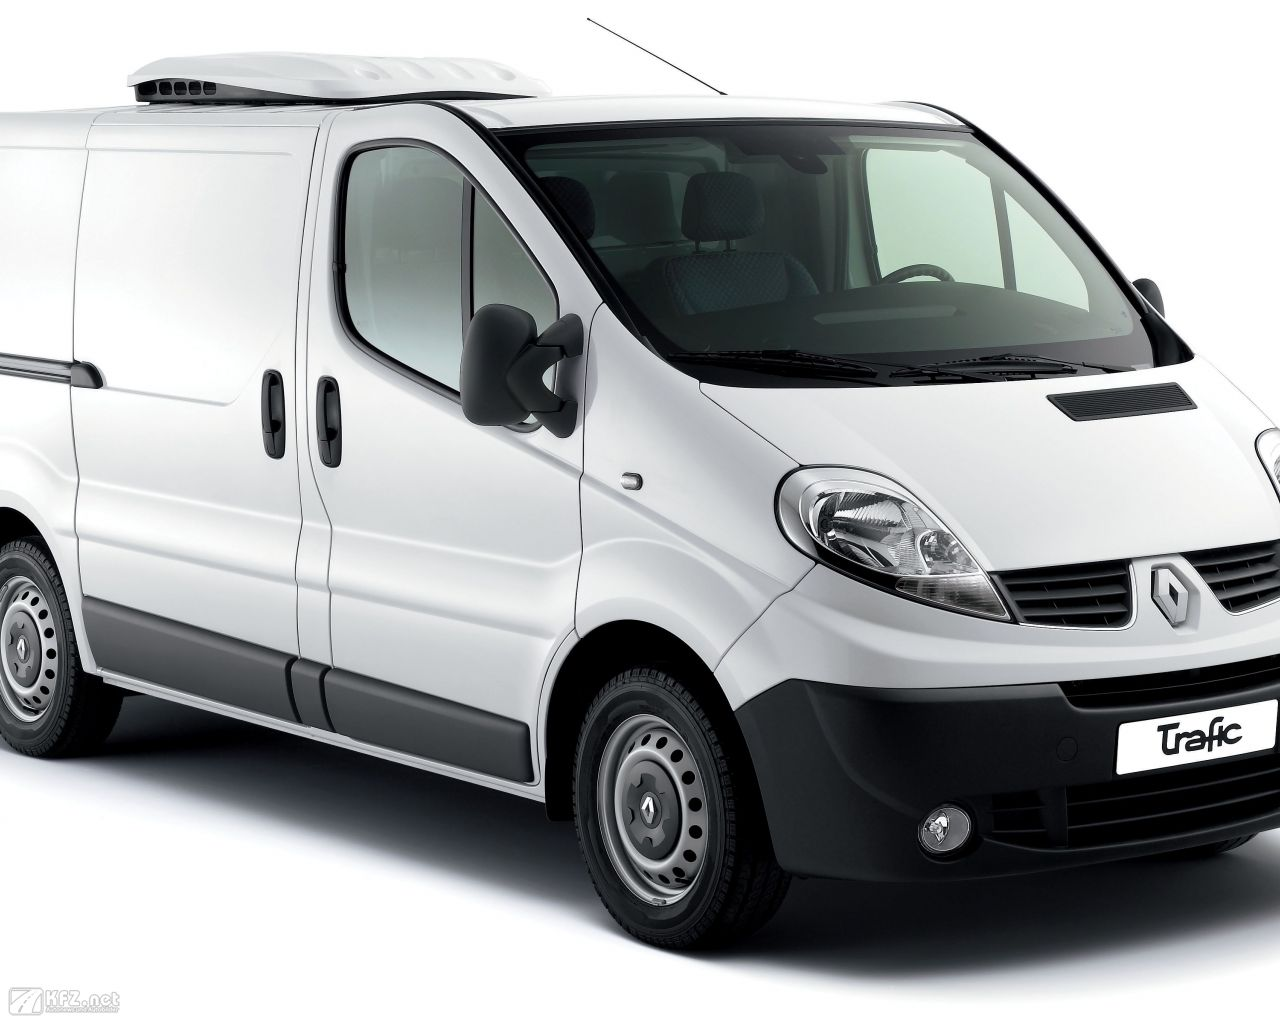 renault-trafic-1280x1024-18